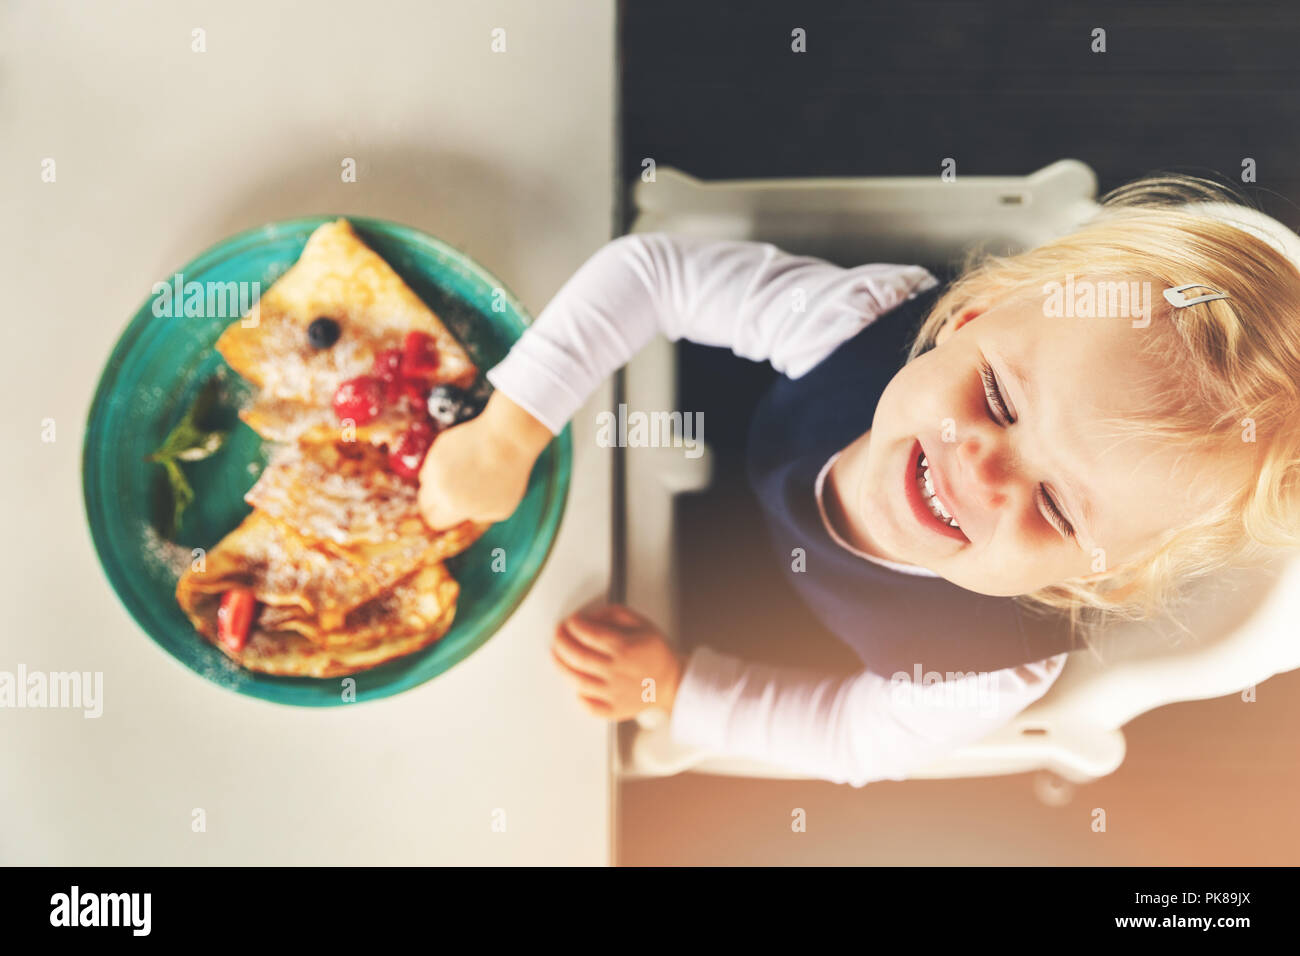 Cute Little Girl divertido comer panqueques con bayas Imagen De Stock